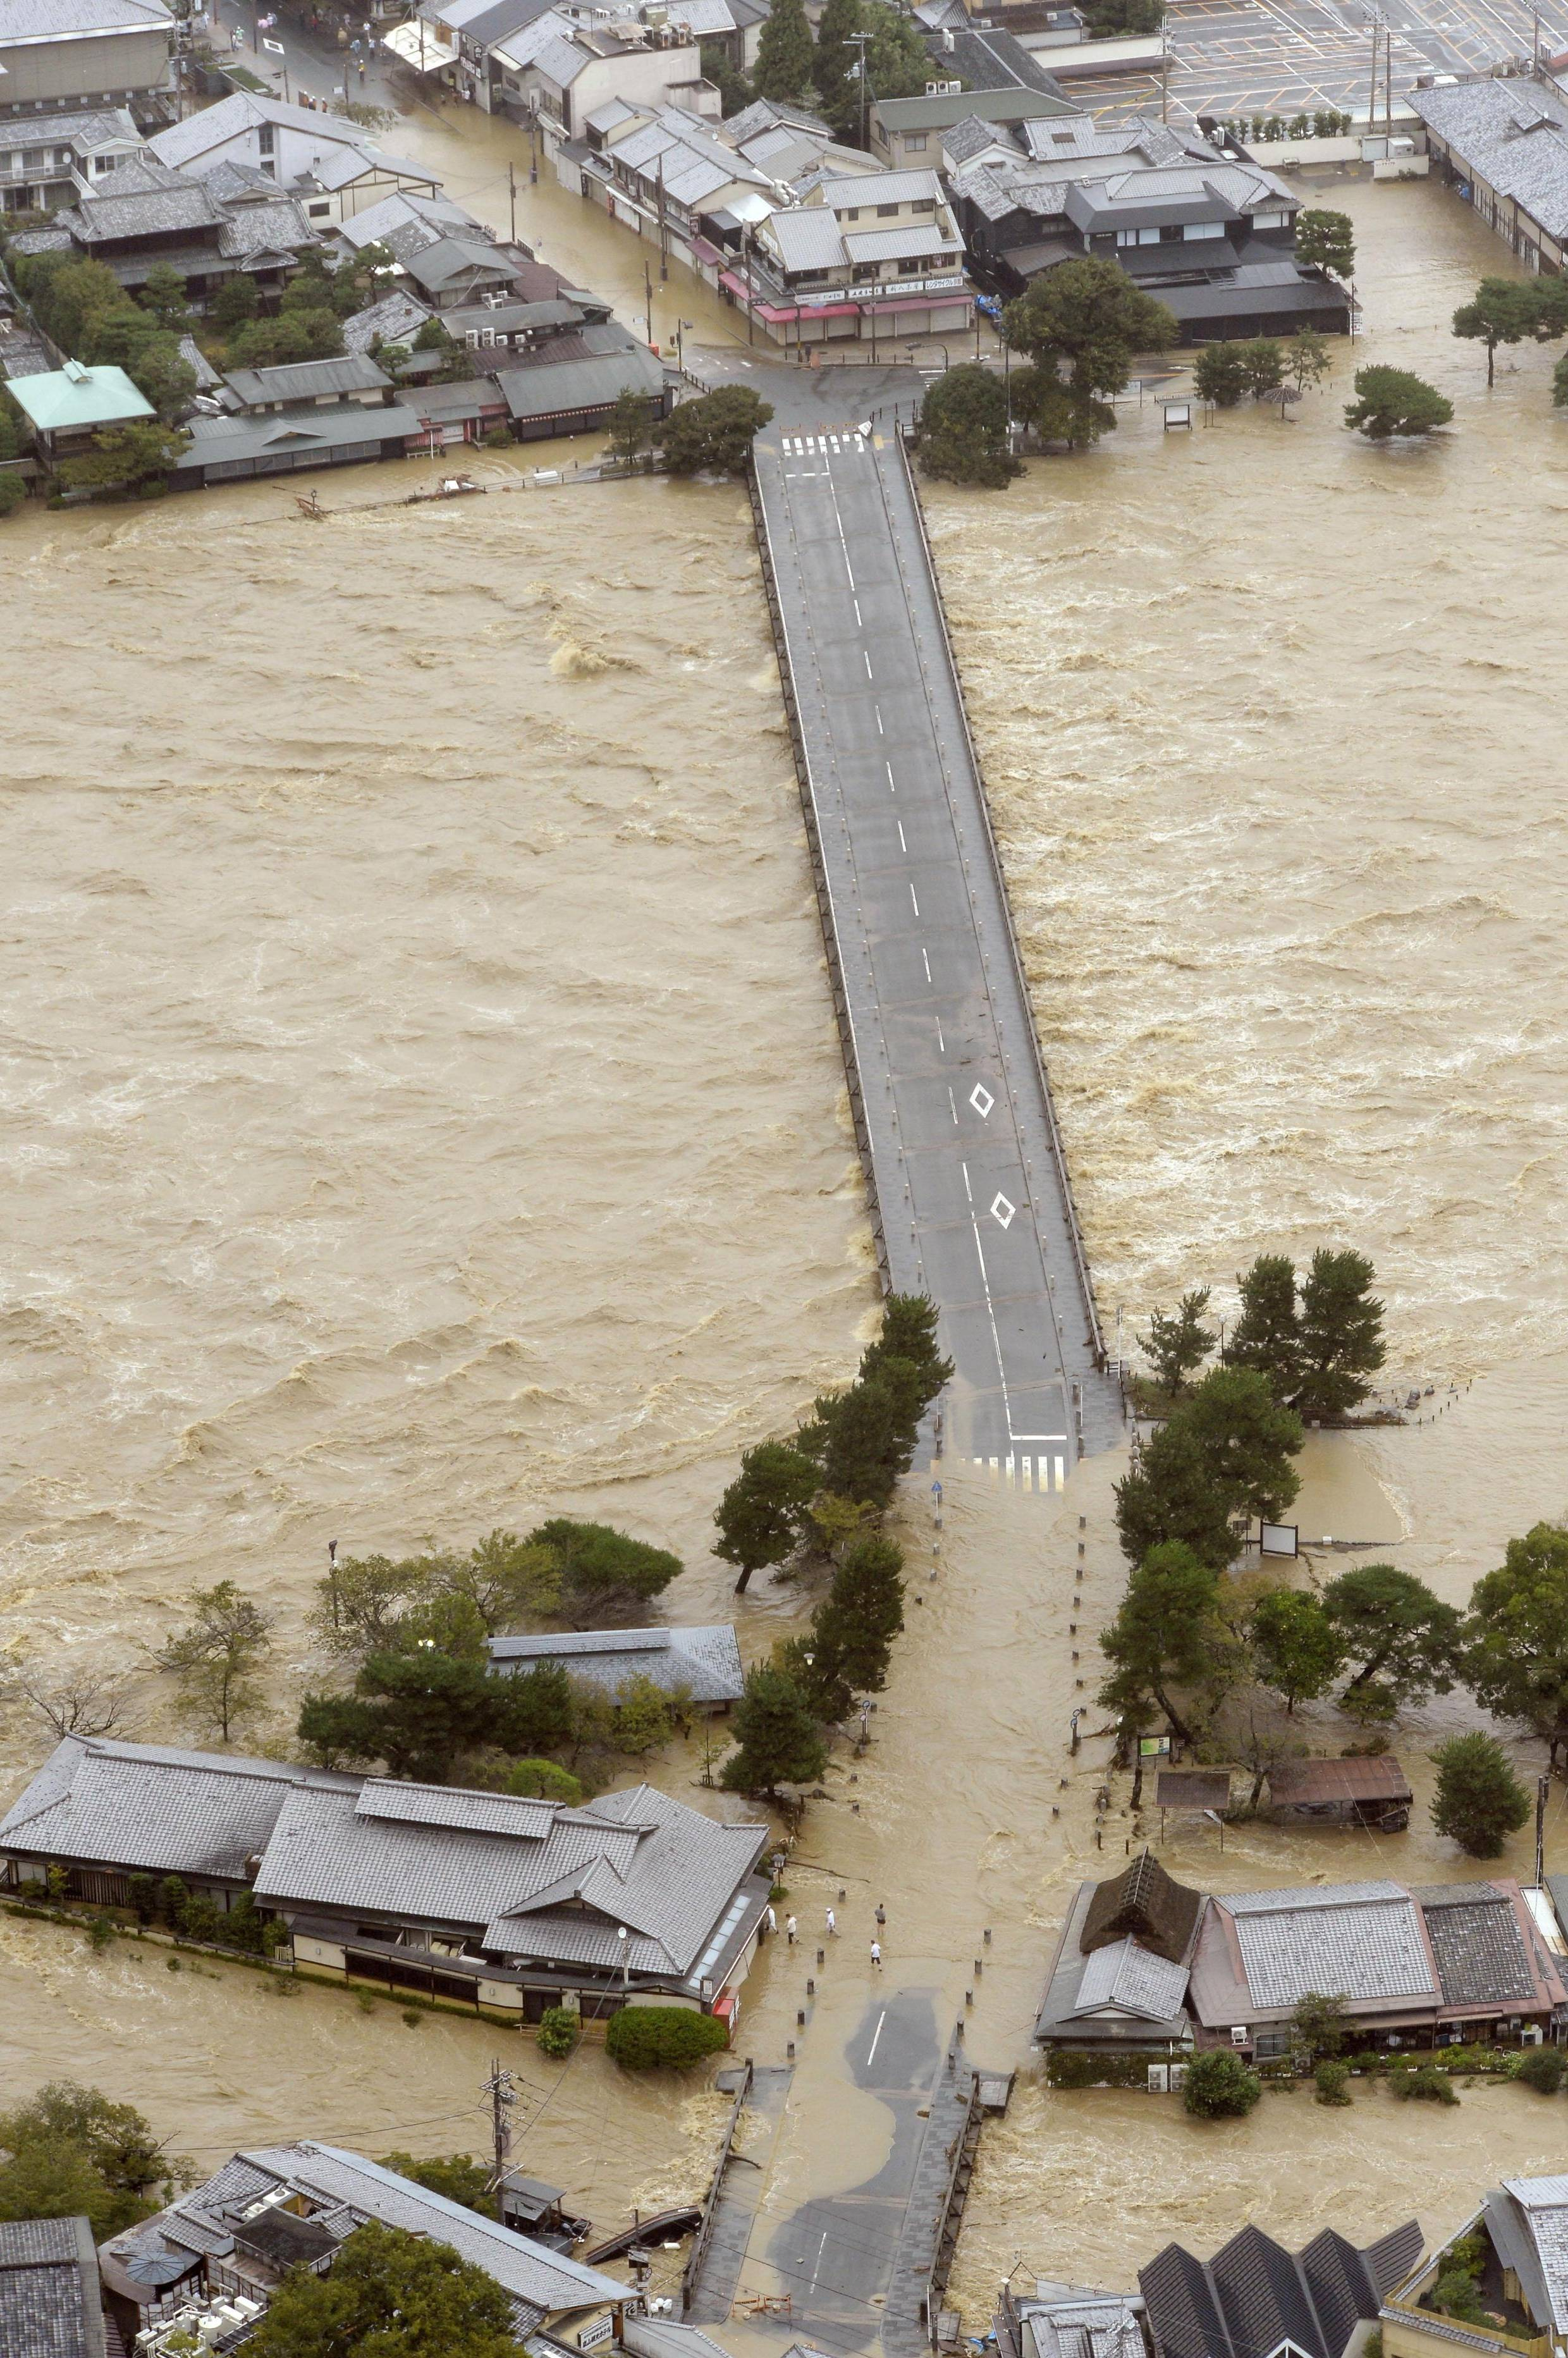 An aerial photo shows floodwaters washing out a bridge that spans Katsurugawa River in Kyoto.